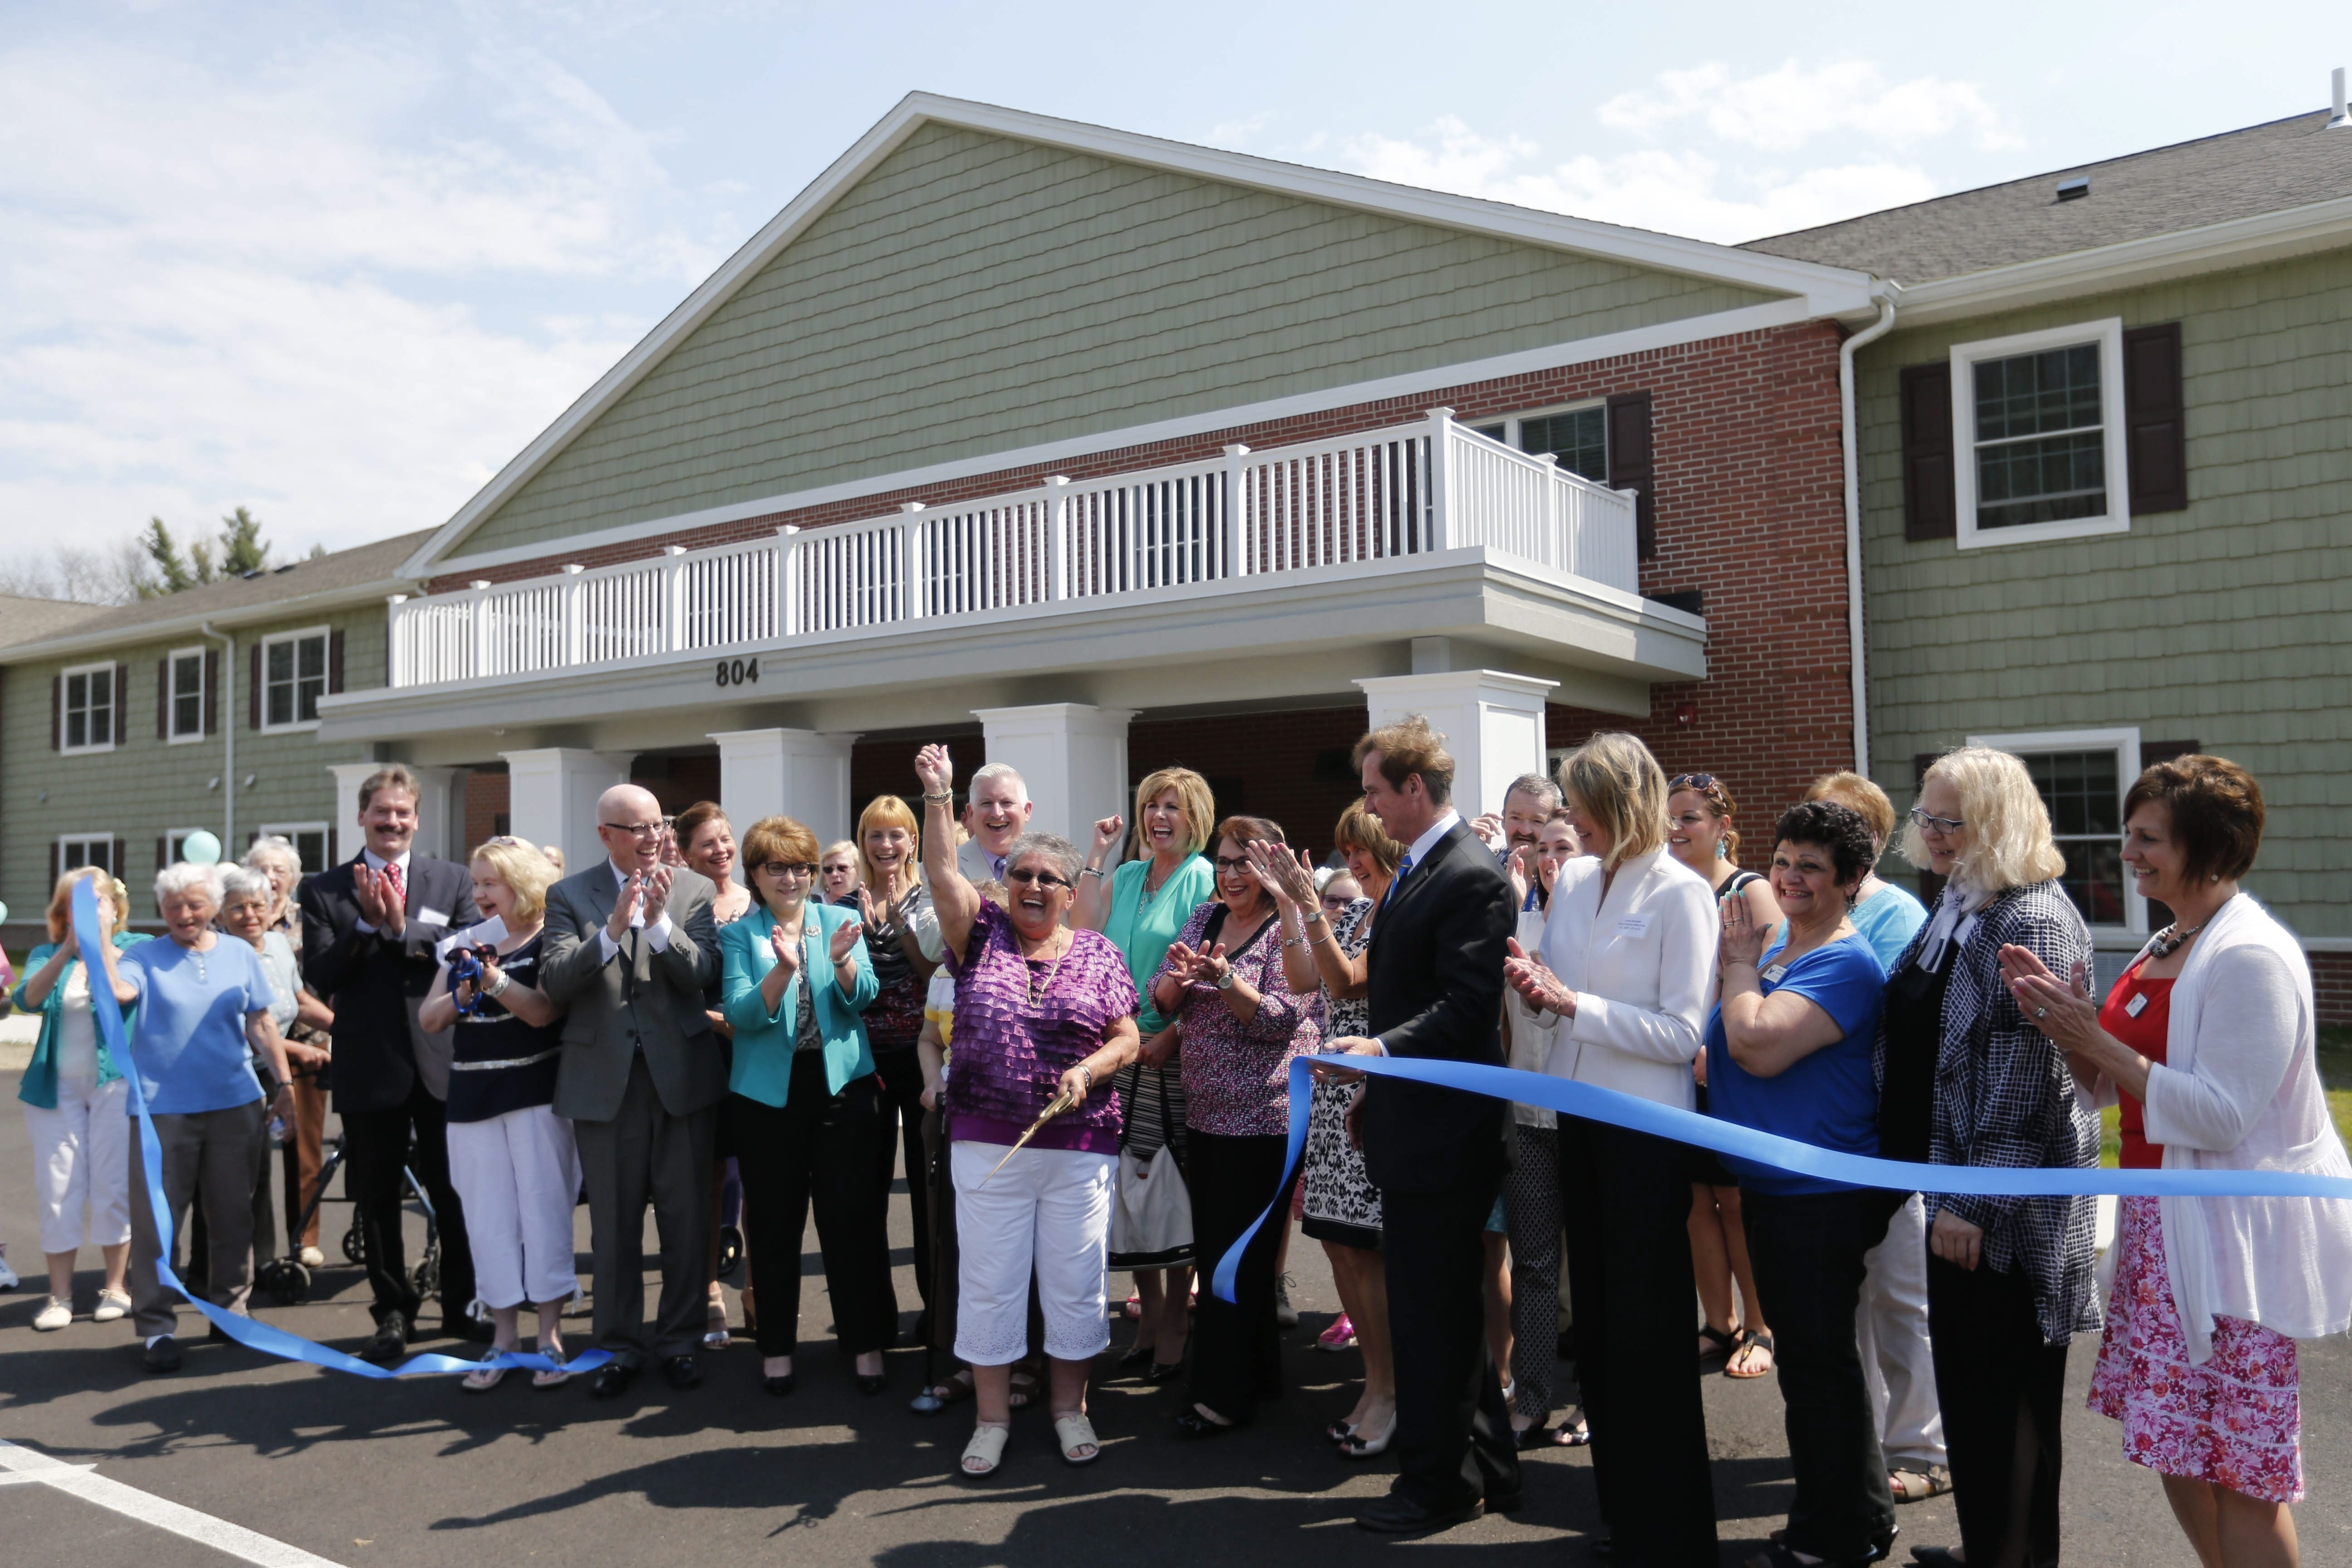 Resident Marilyn Donohue raises her arm after cutting the ribbon at the grand opening celebration for the residents of the Walnut Senior Living complex in West Seneca on Friday.